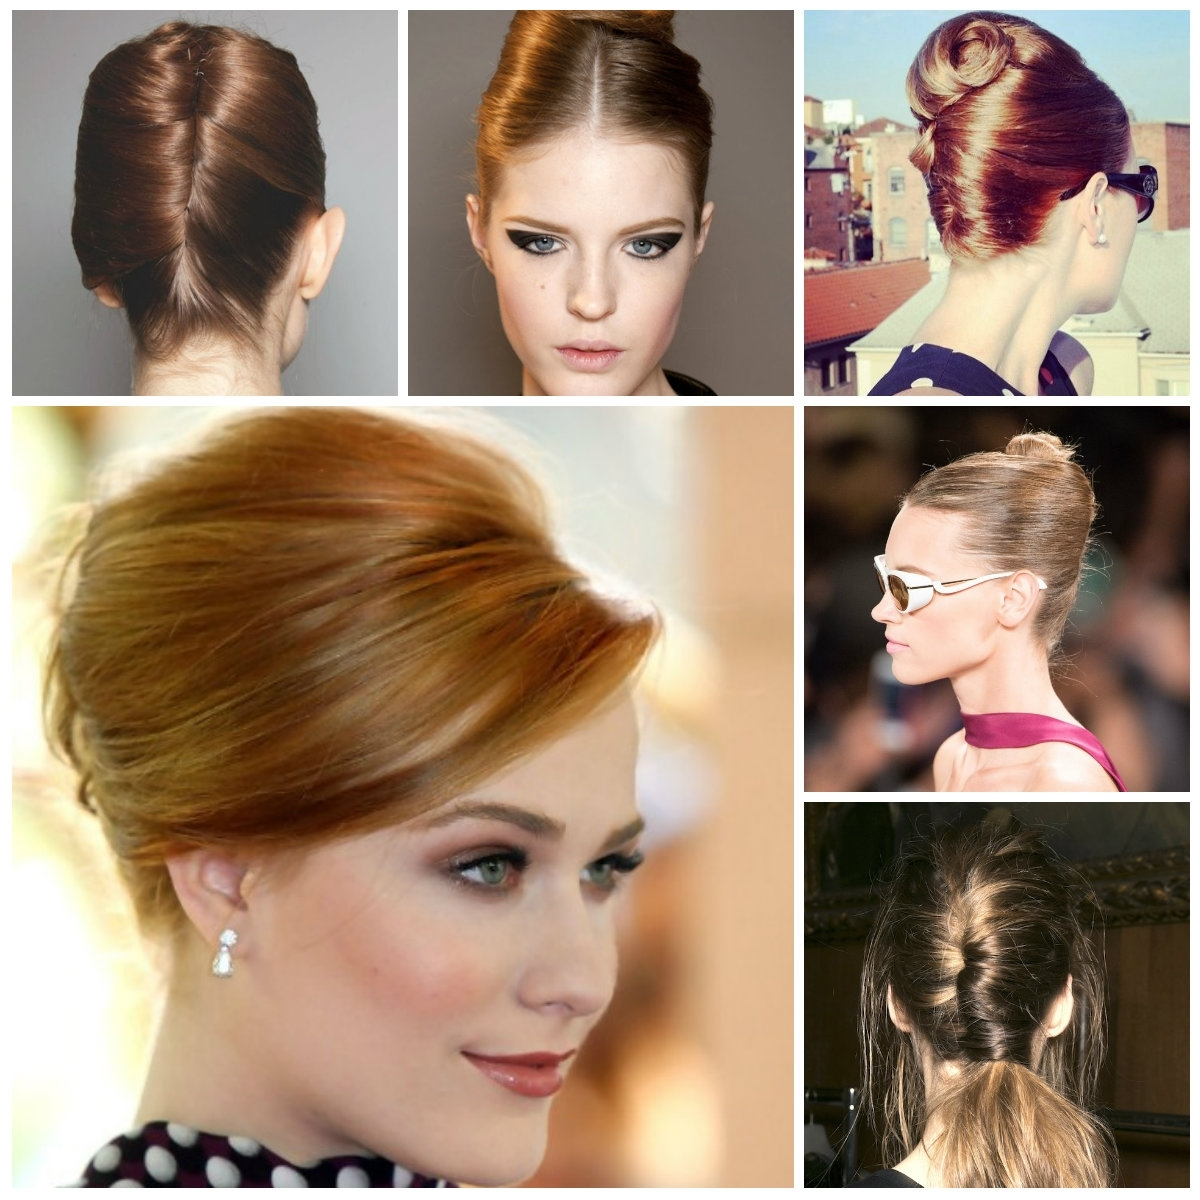 2017 Trendy French Twist Hairstyles | New Haircuts To Try For 2018 Intended For French Twist Updo Hairstyles (View 9 of 15)